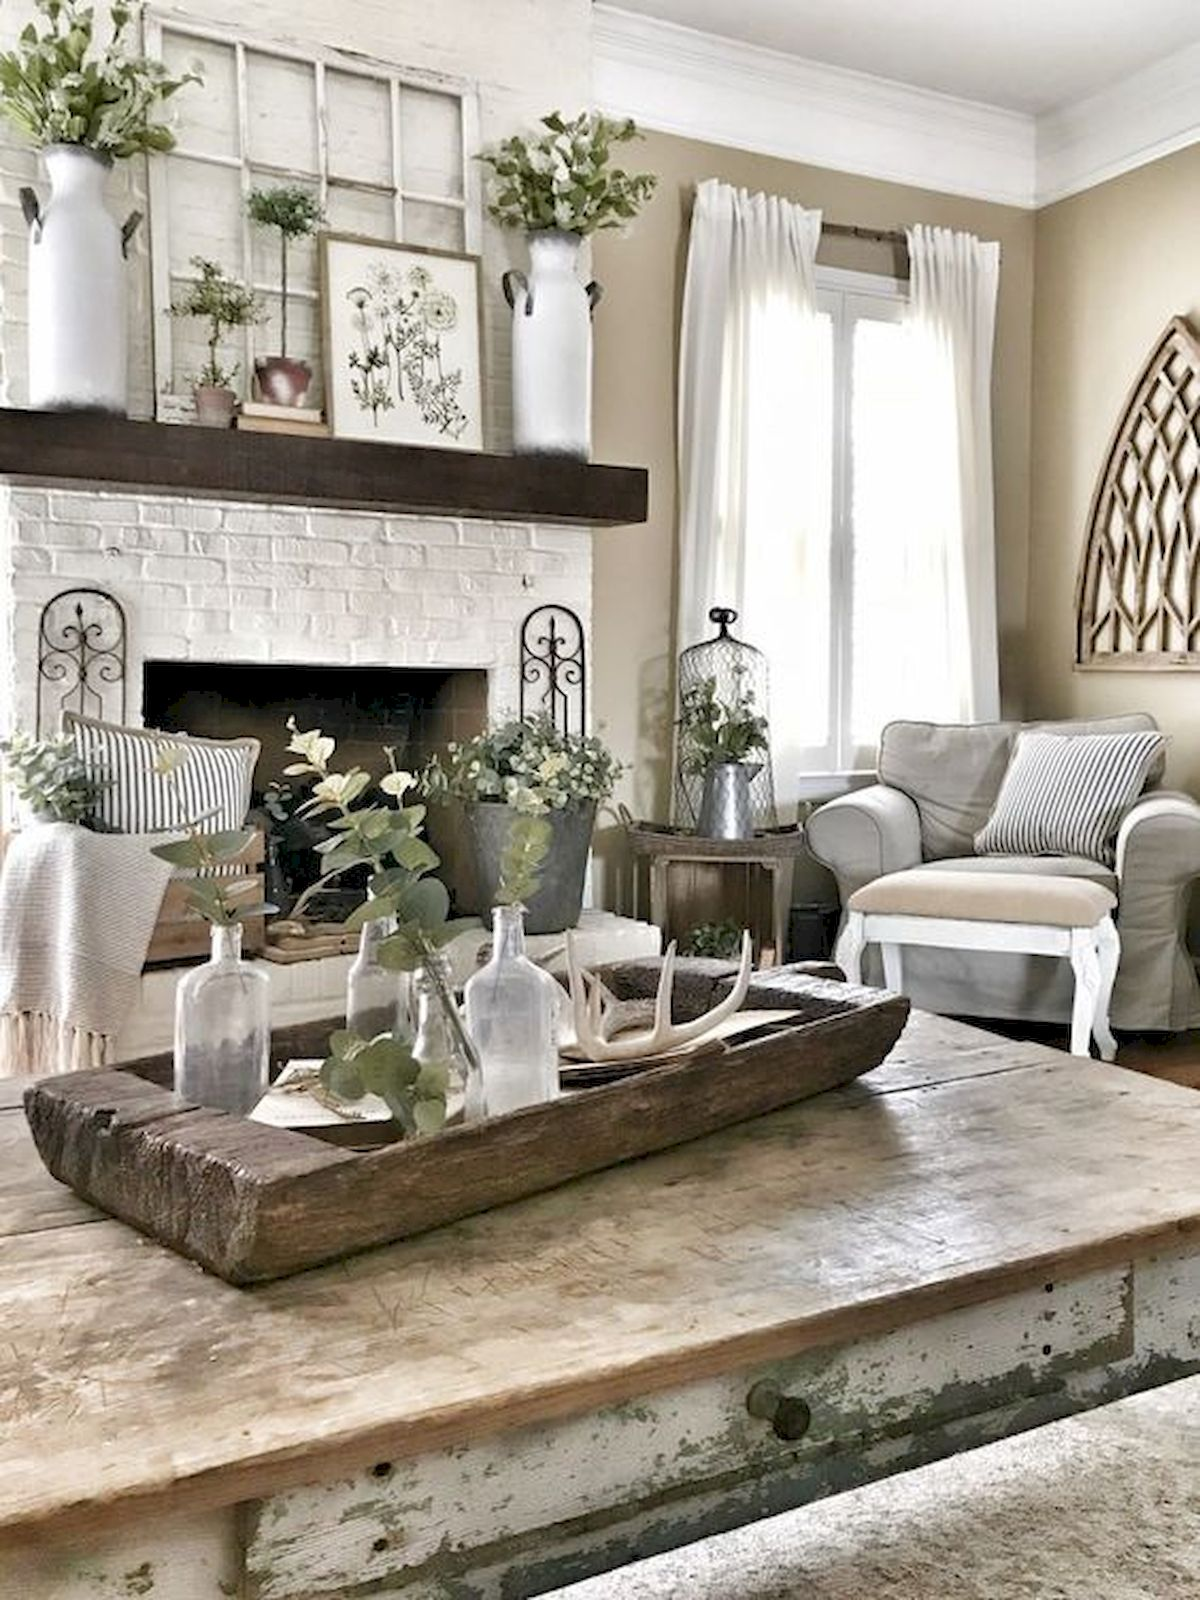 75 Best Farmhouse Wall Decor Ideas for Living Room - Ideaboz